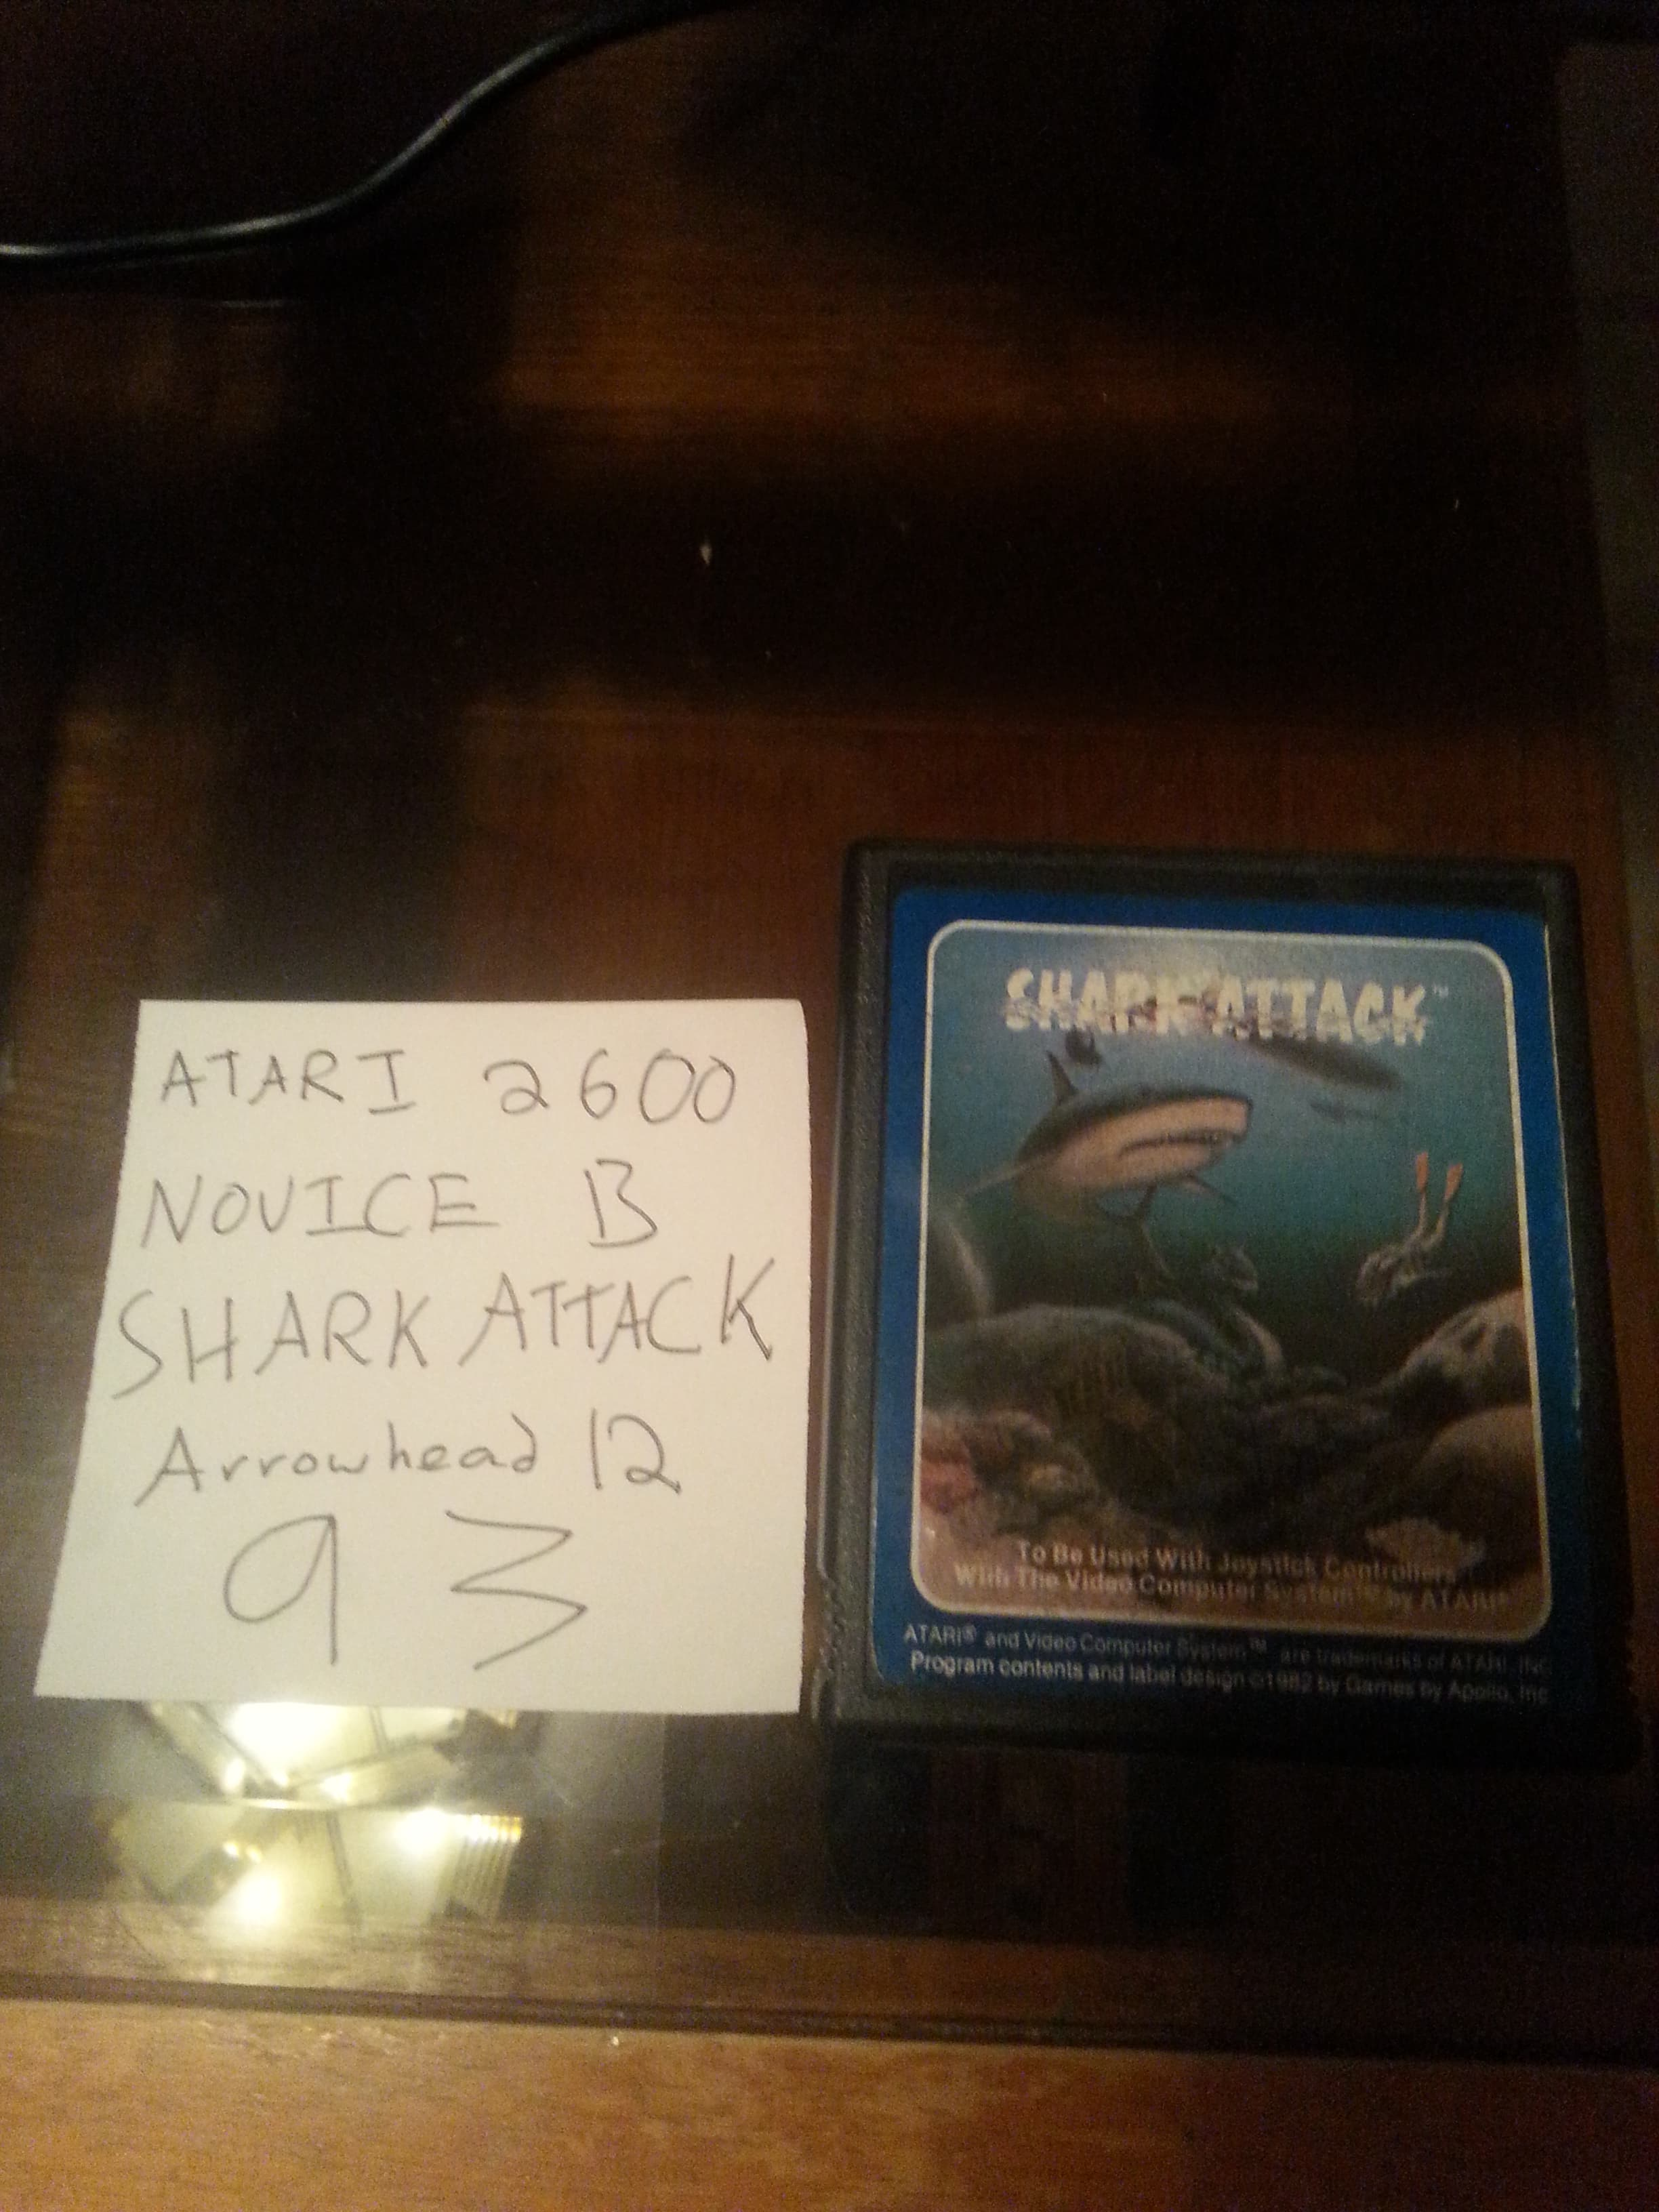 Arrowhead12: Shark Attack (Atari 2600 Novice/B) 93 points on 2018-09-26 01:52:06